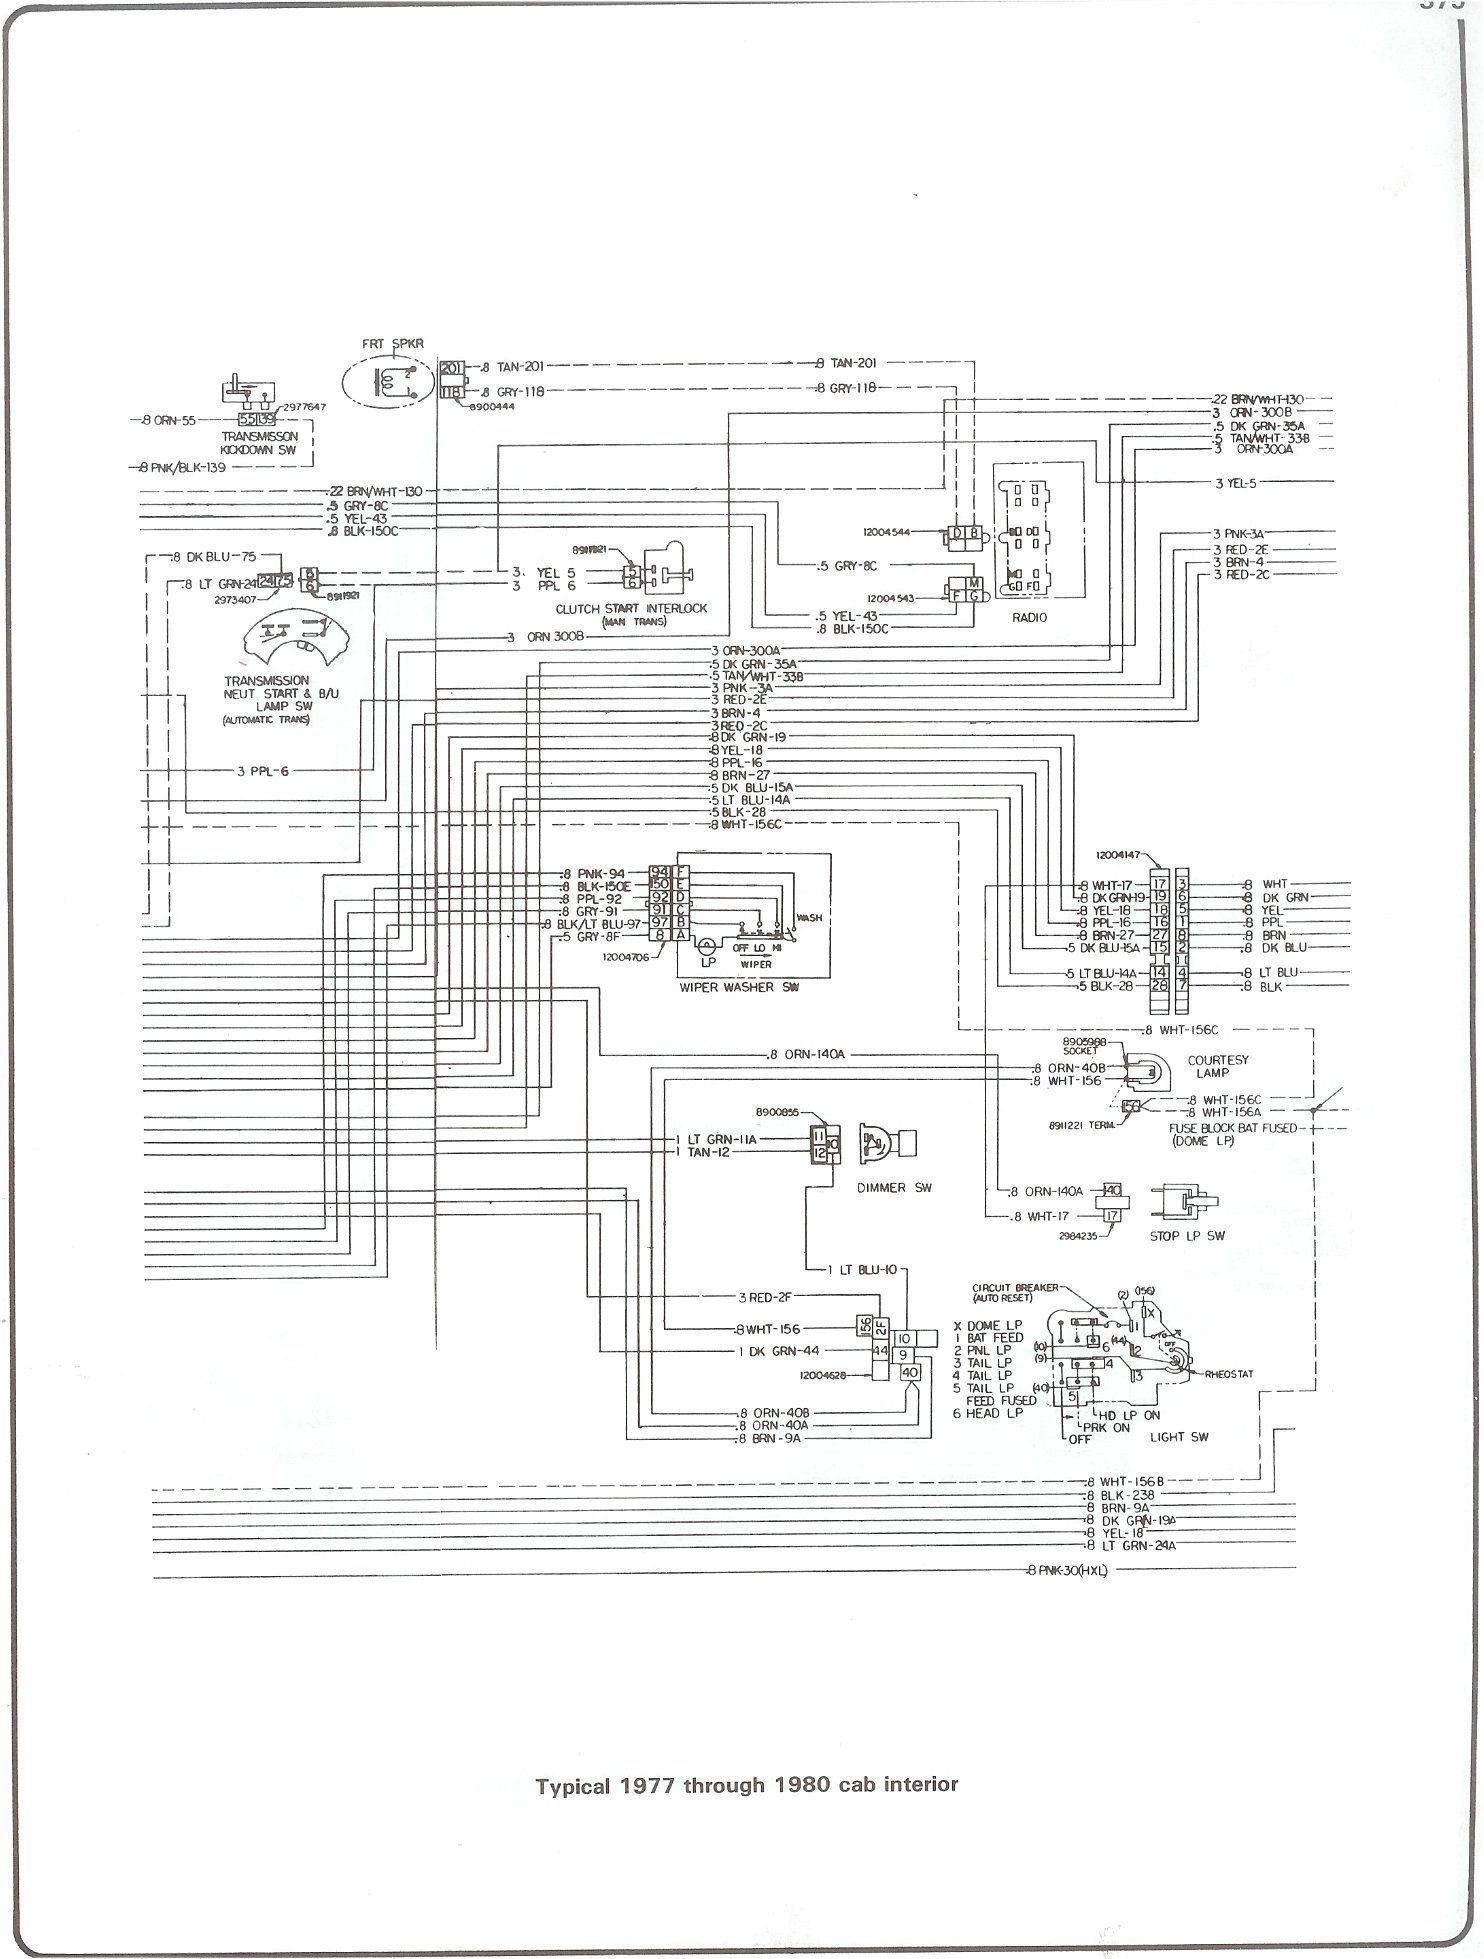 78 chevy truck wiring diagram wiring diagram rh jh pool de